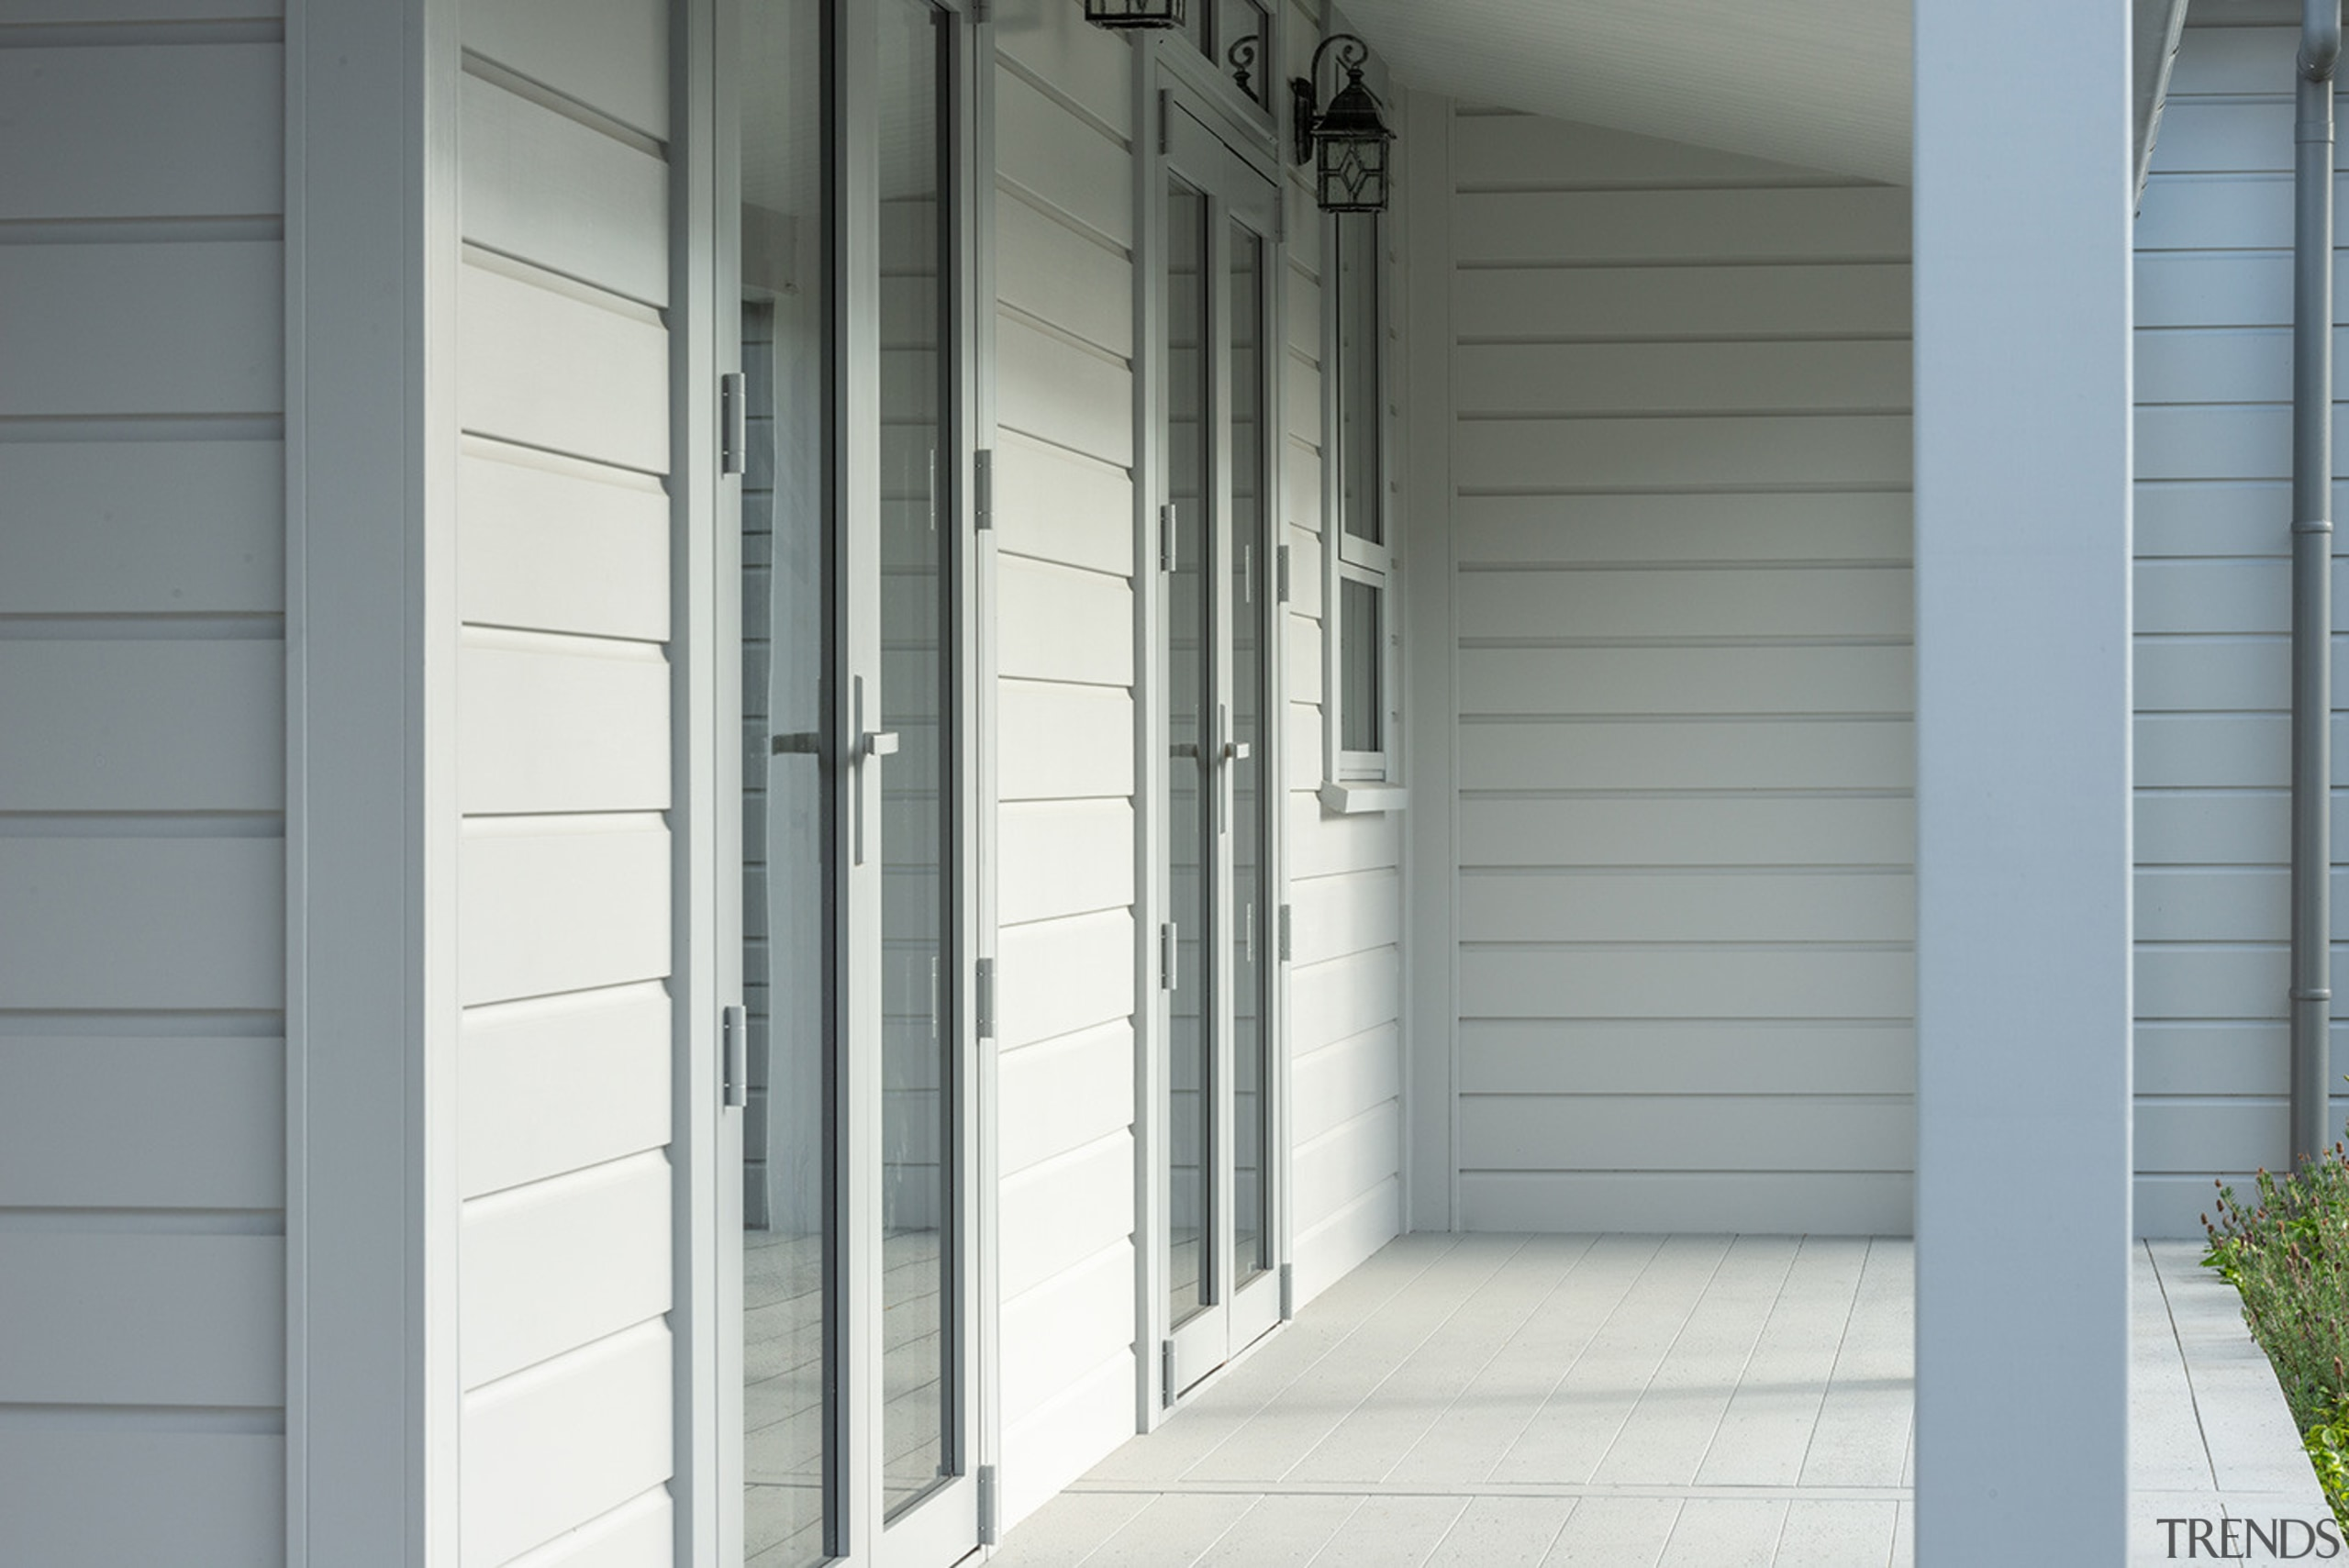 Laminated Timber Verandah Post Made By Niagara - architecture, door, facade, home, siding, structure, wall, window, window covering, gray, white